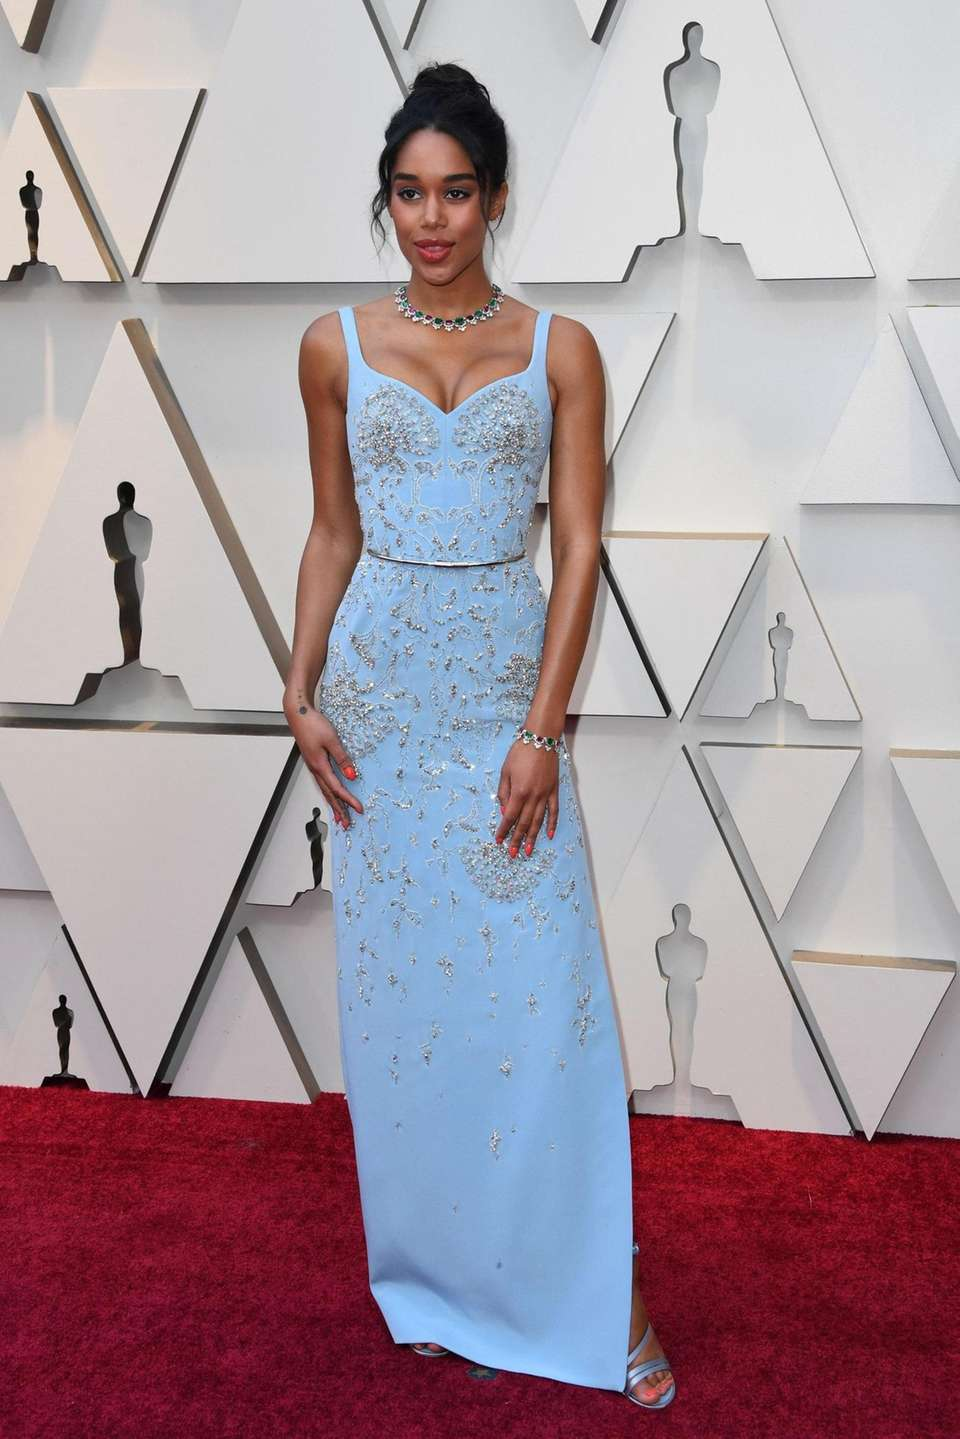 US actress Laura Harrier arrives for the 91st